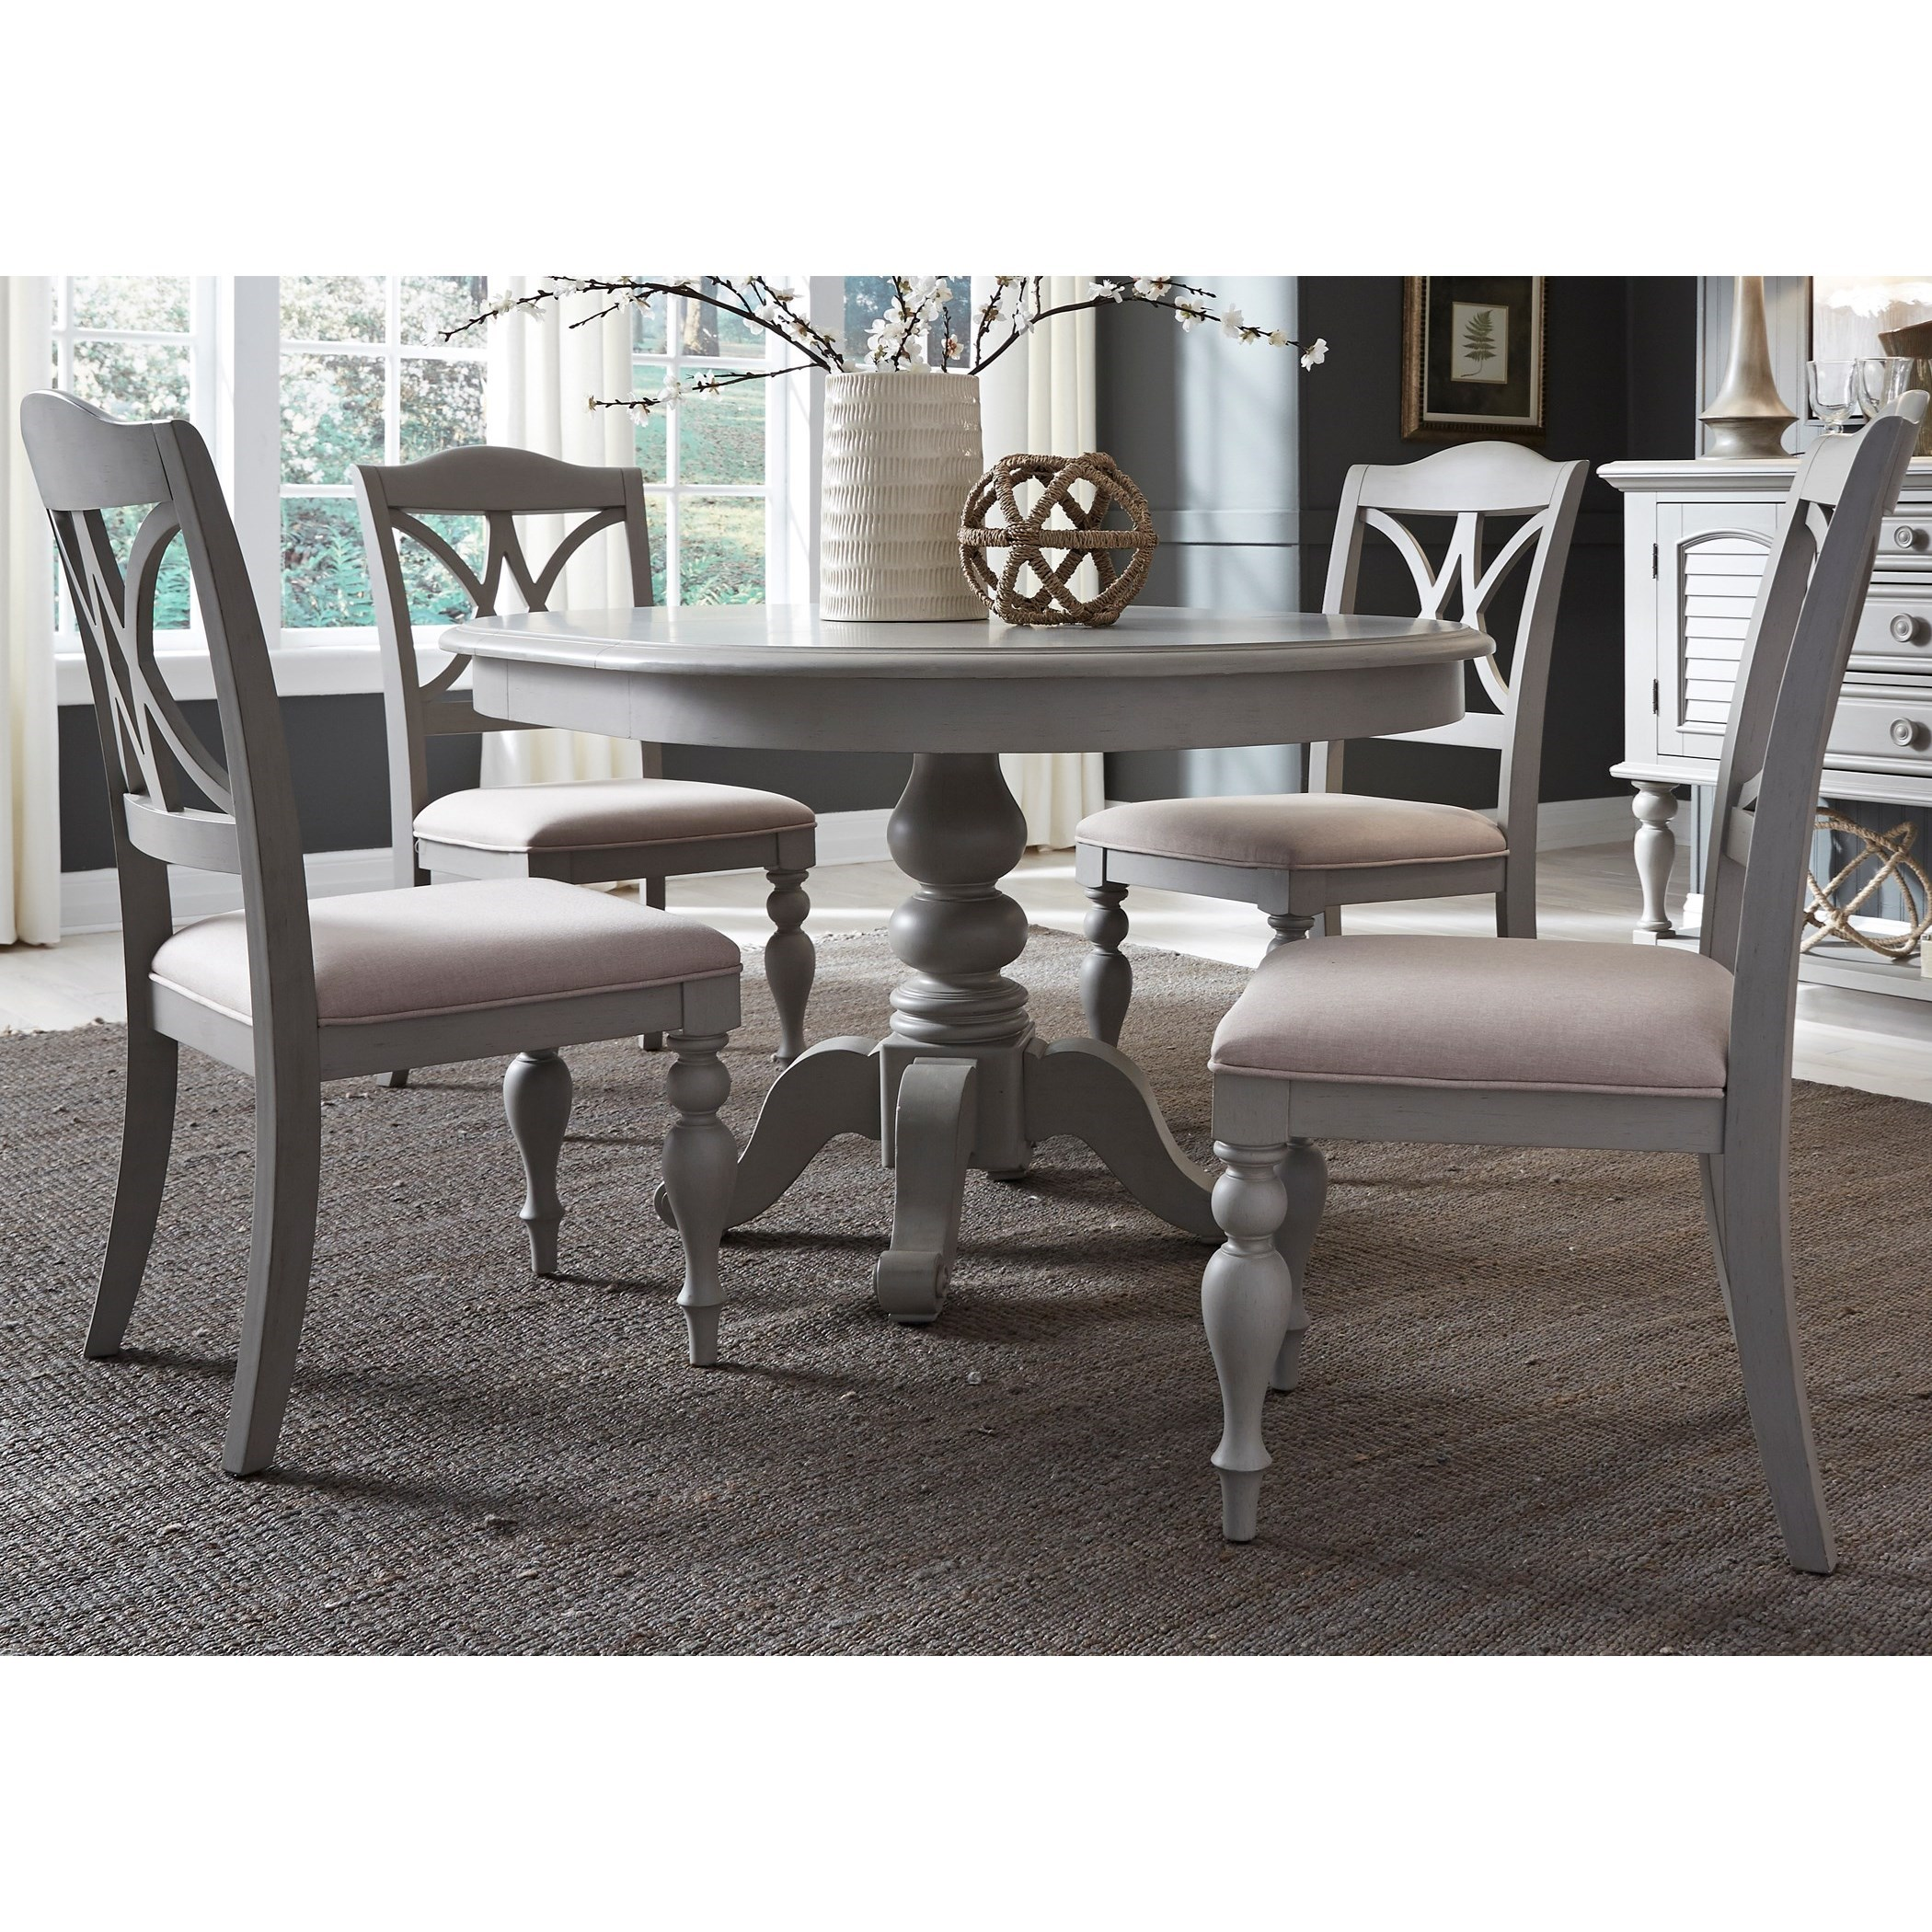 Round Dining Room Tables For 12: Freedom Furniture Summer House Dining Transitional Round